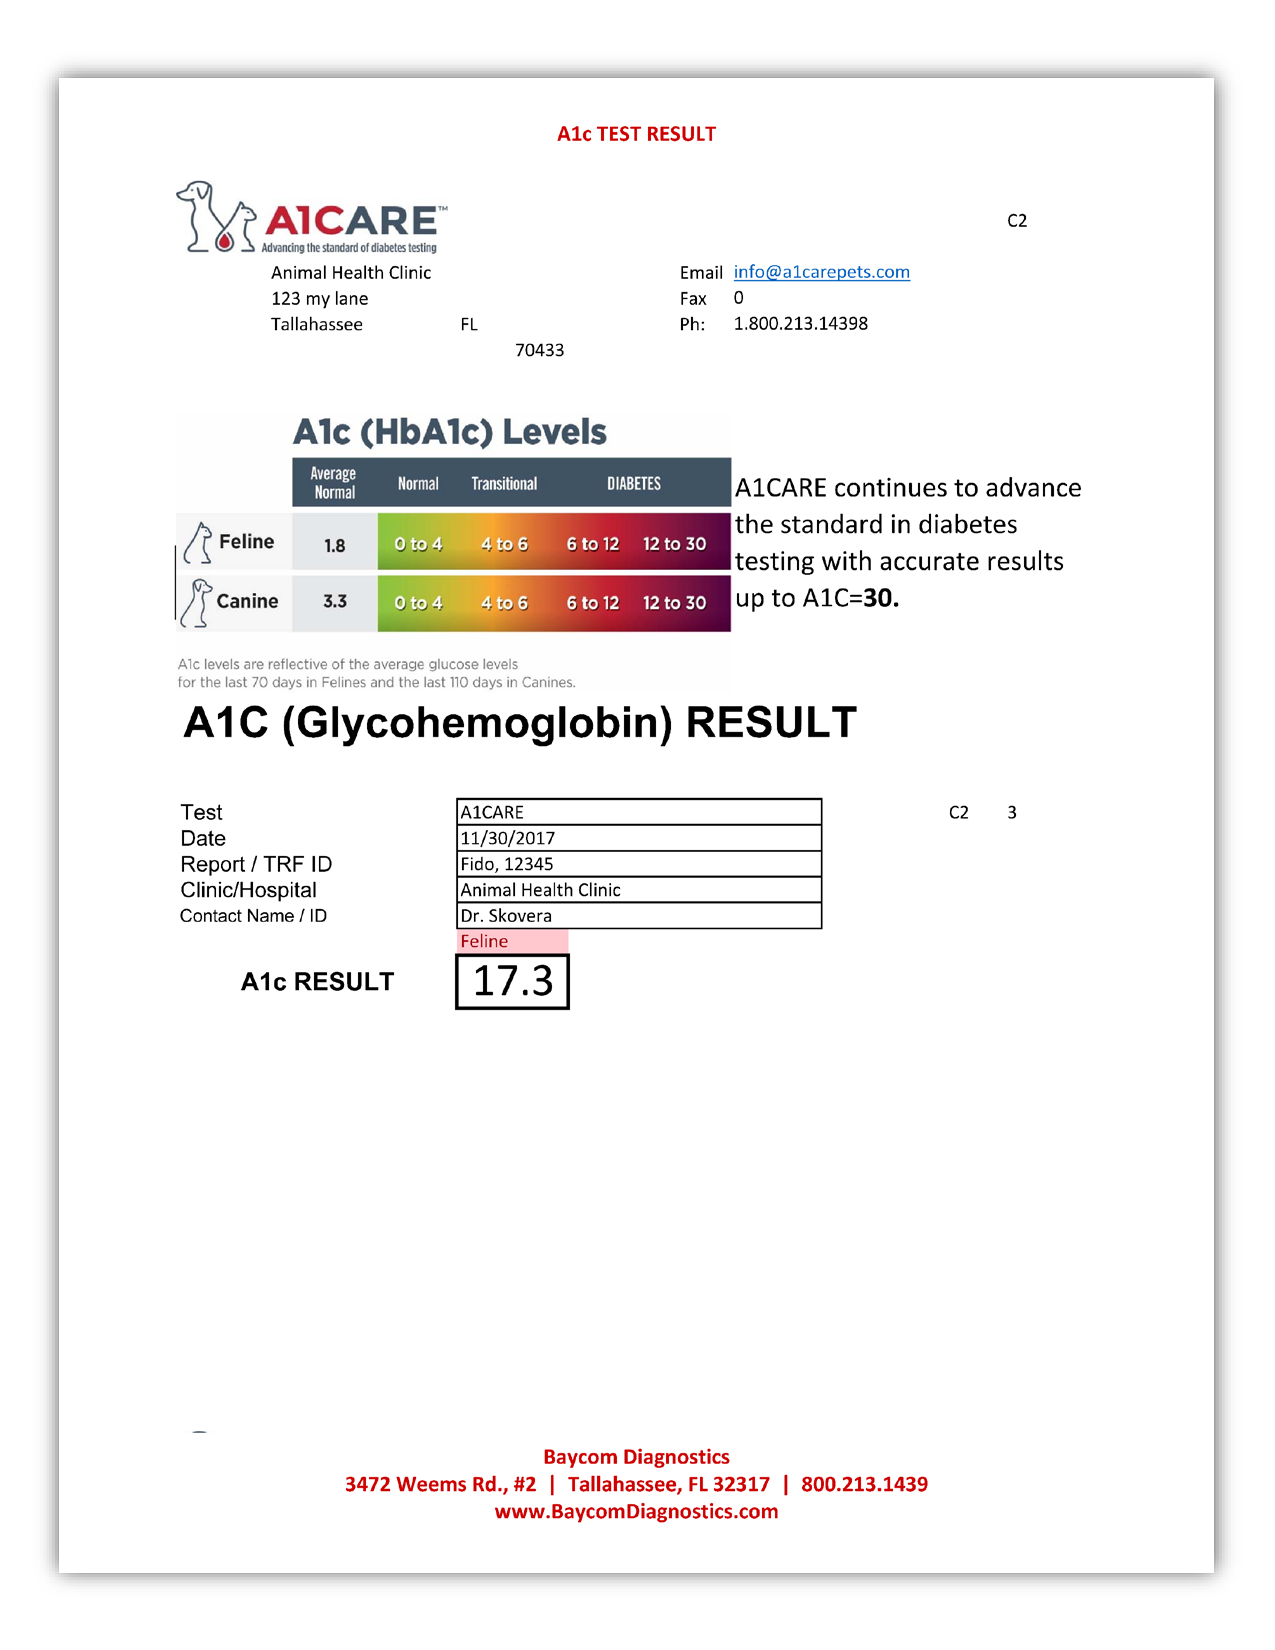 A1CARE Sample Test Result